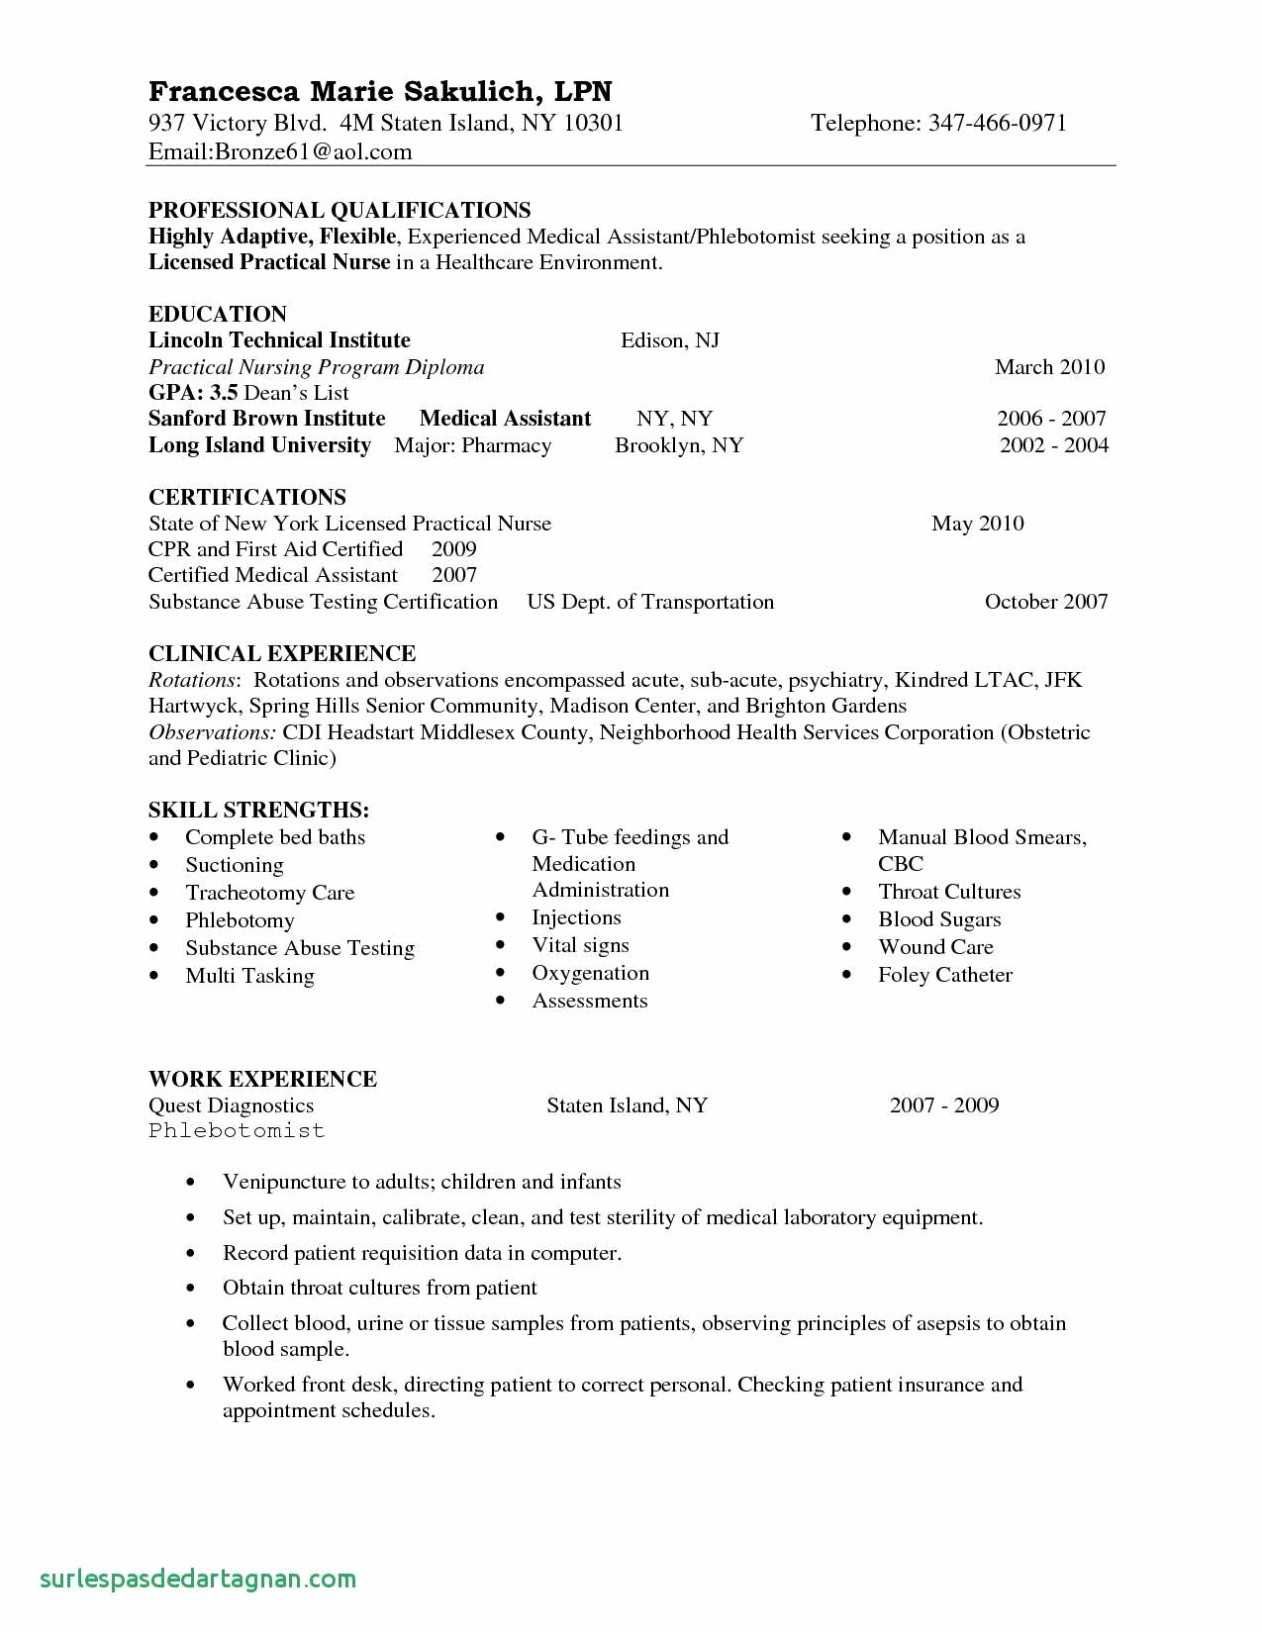 Student Nurse Resume Template - Awesome New Grad Nursing Resume Template